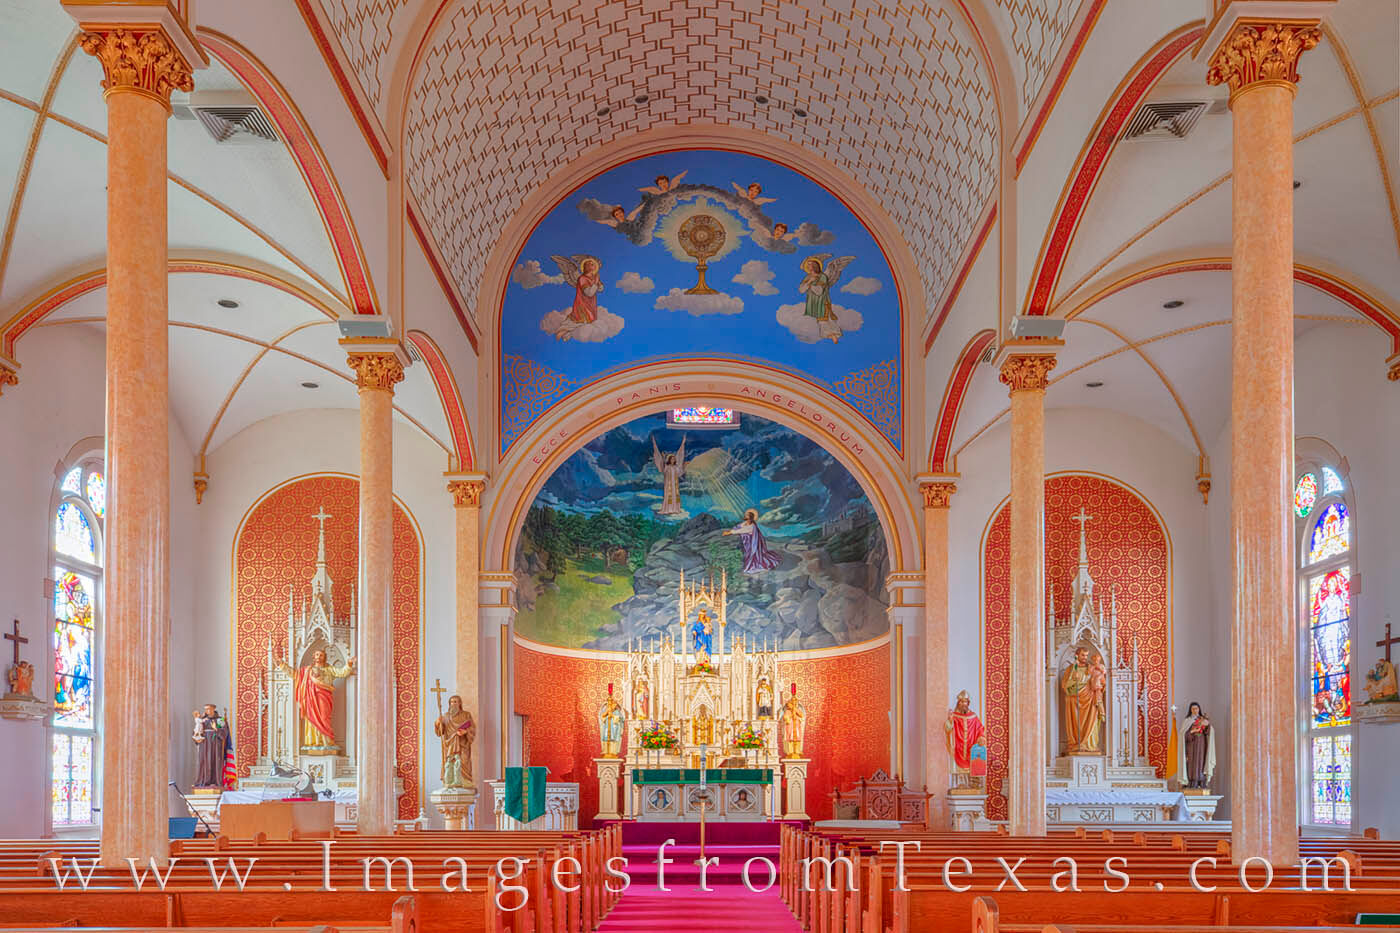 Shiner, Texas, is known for many things - its country beauty, its beer, and its famous Painted Church. St. Cyril and Methodius...